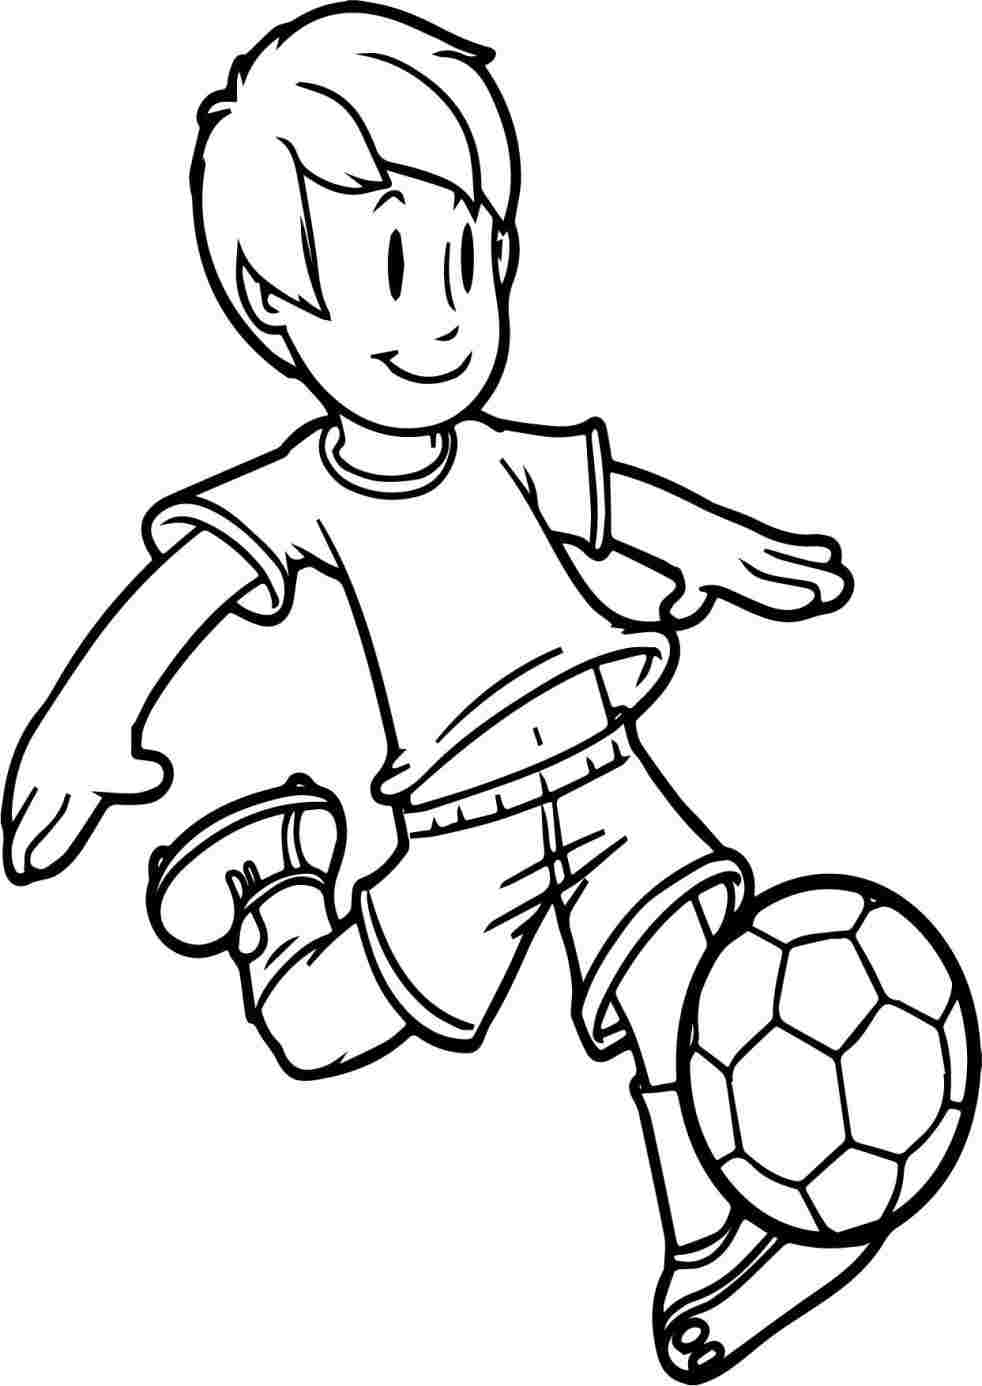 982x1386 Football Player Cartoon Drawing